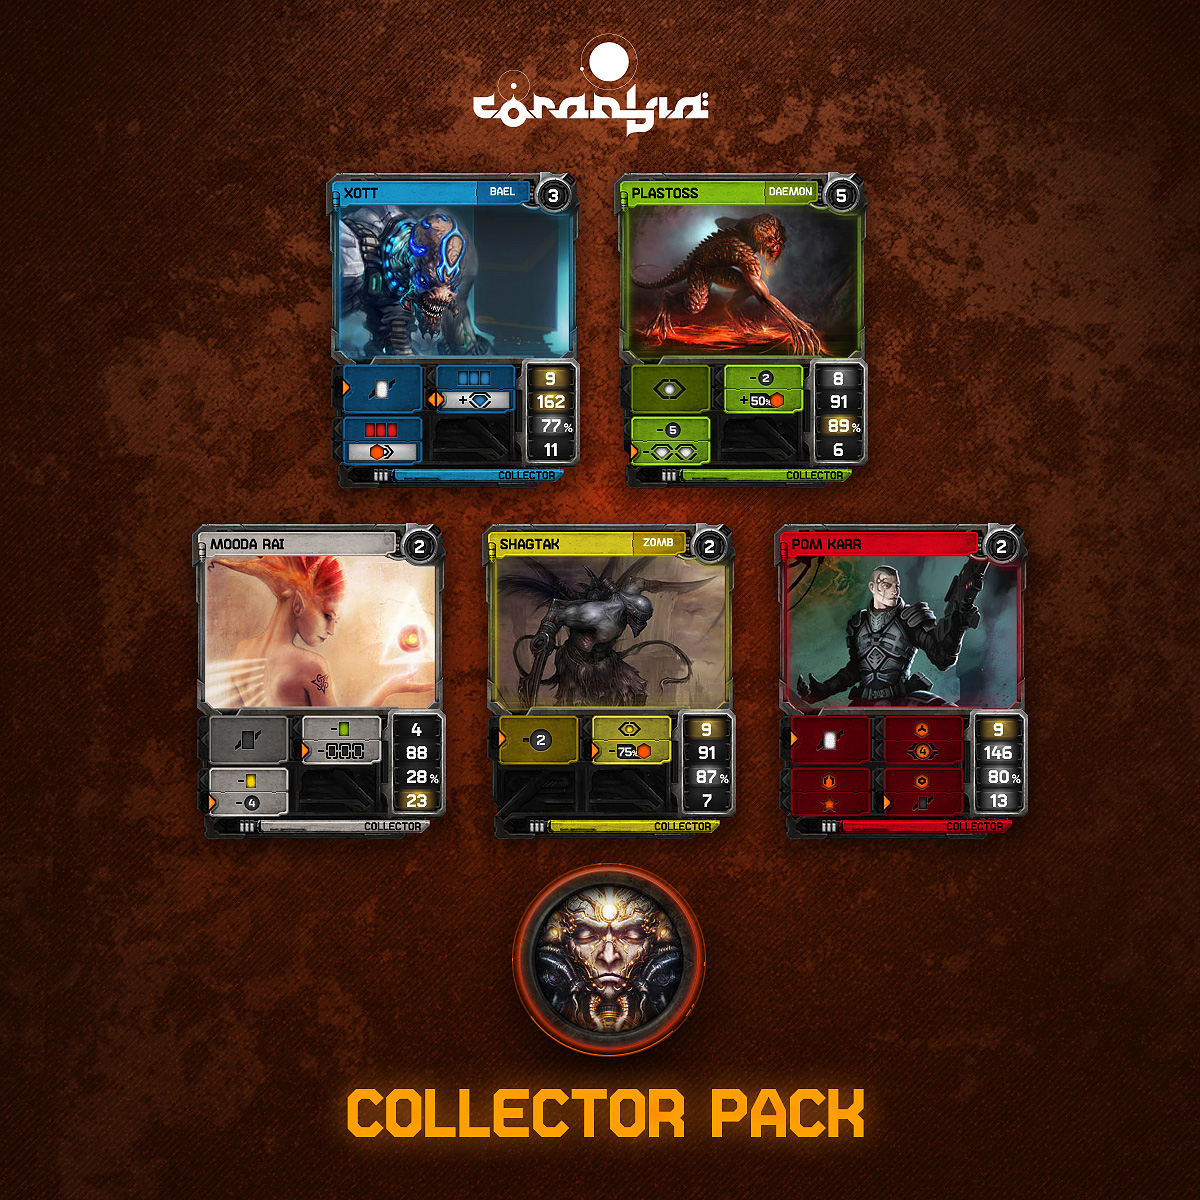 Co najdete v Coraabia Collector Pack?